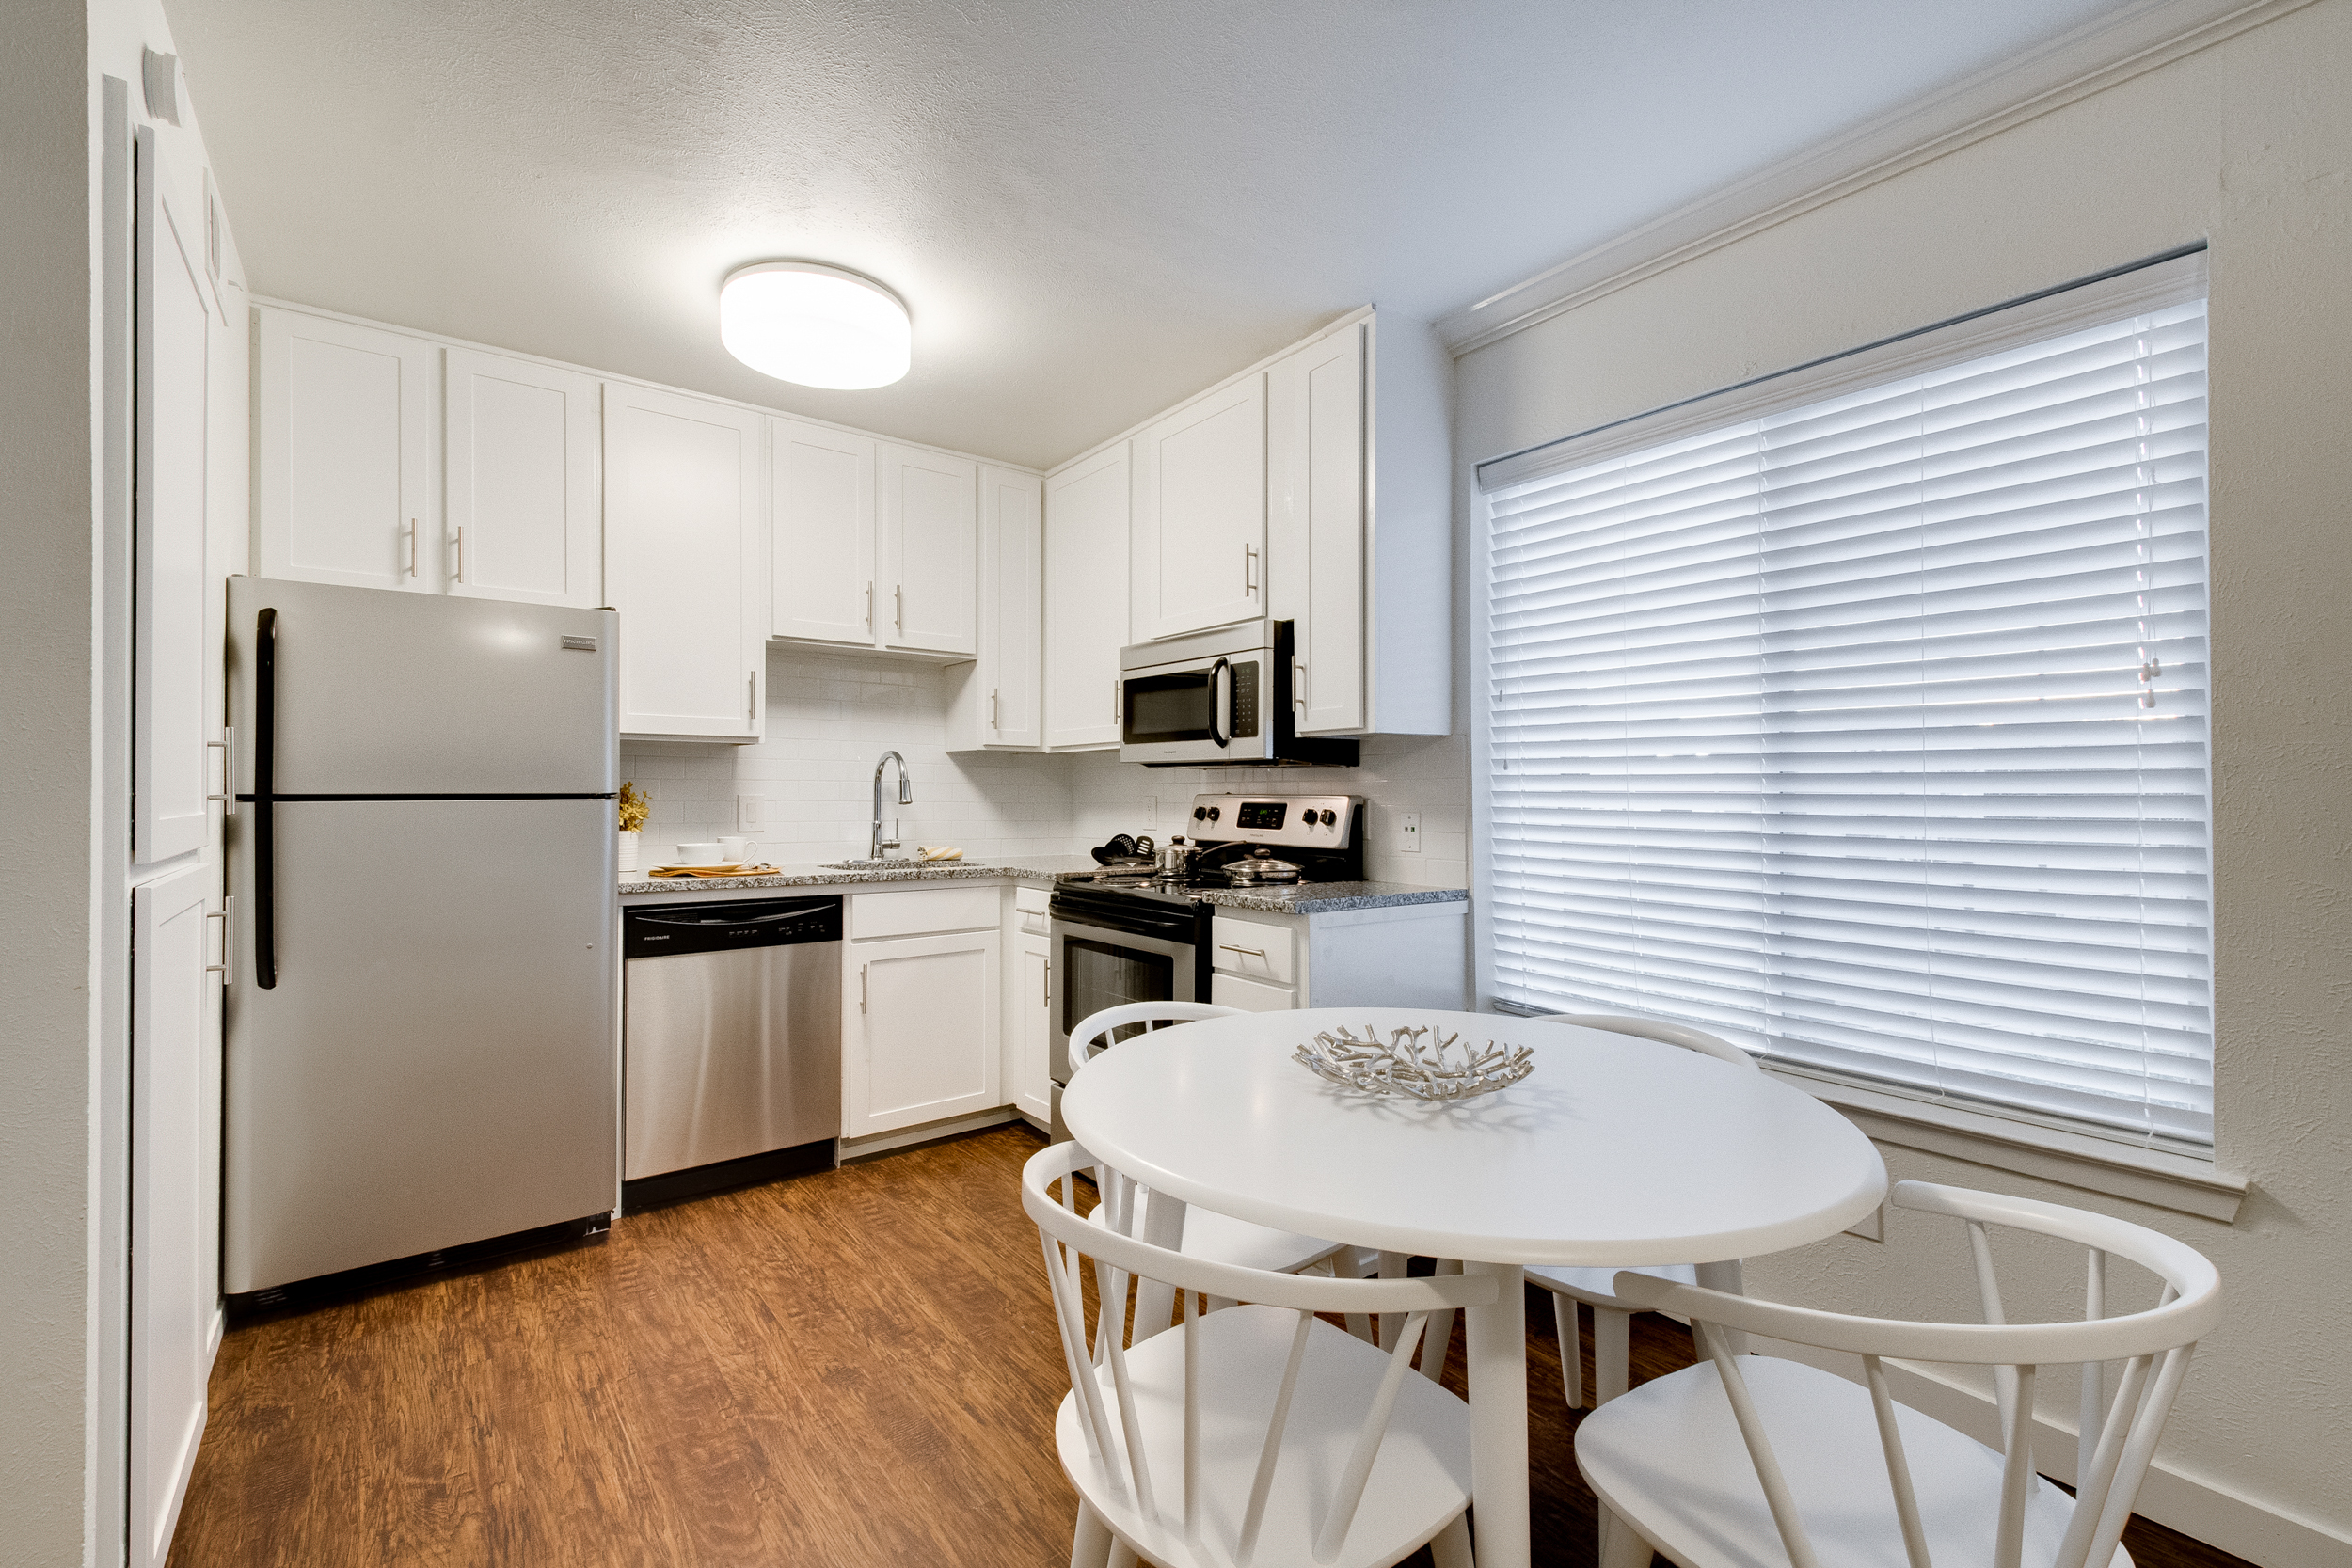 Interior view a kitchen area with white cabinets, stainless steel appliances, and and a white table with four chairs